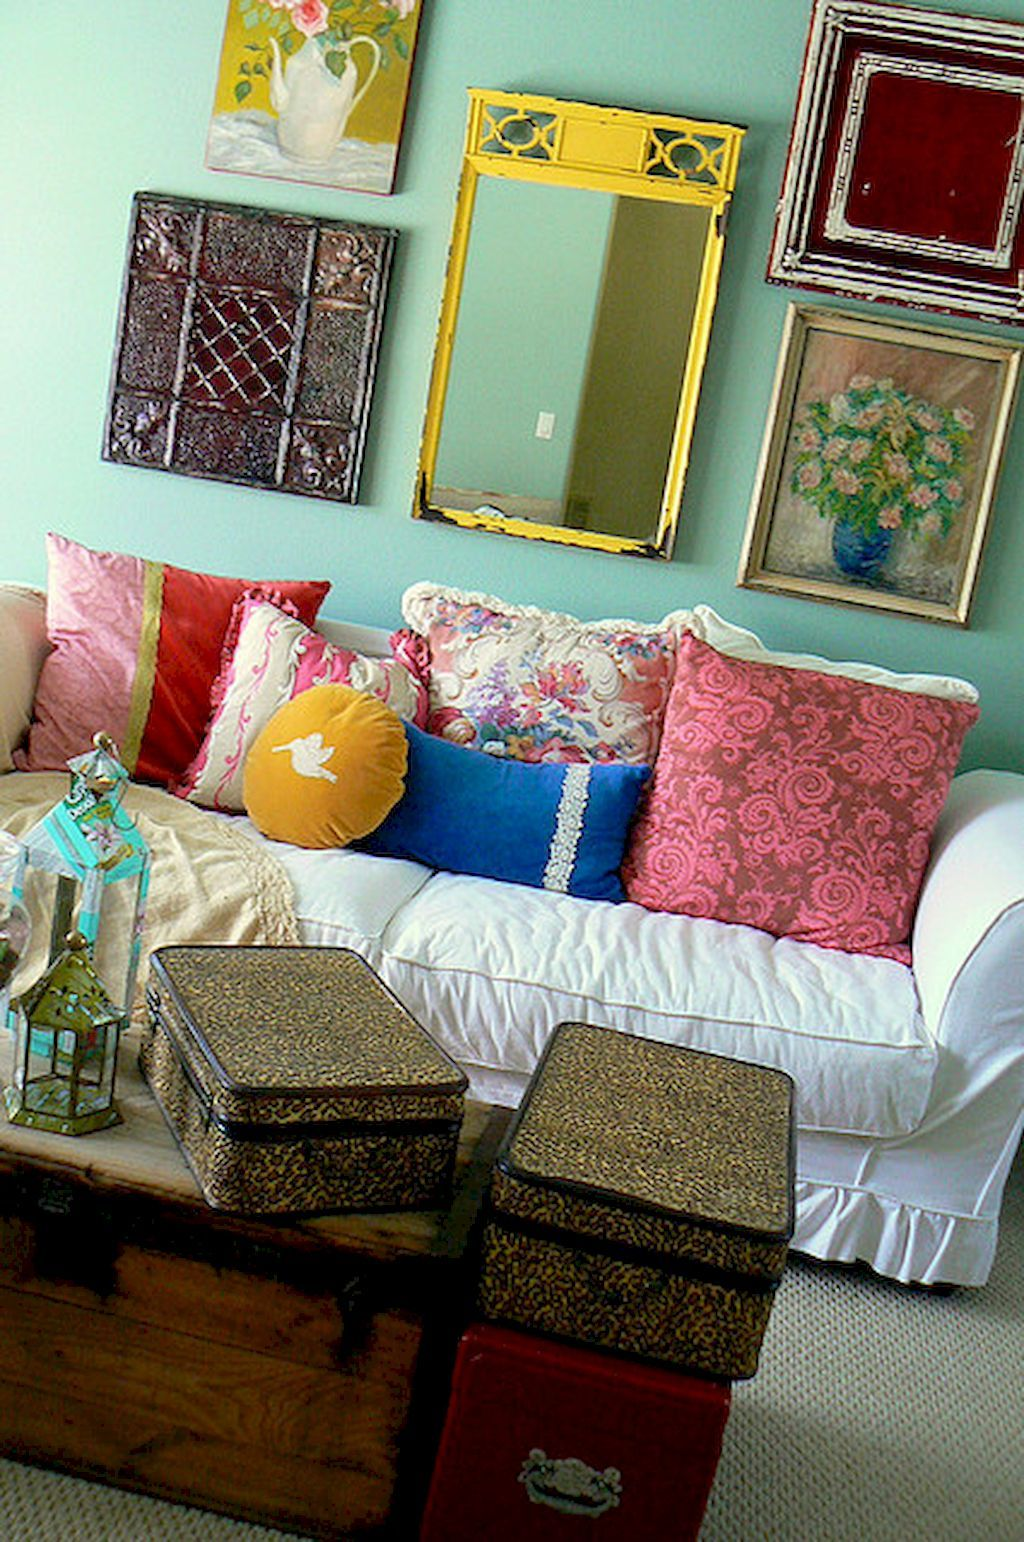 Beautiful First Home Decorating Ideas On A Budget: Cool 60 Granny Chic Ideas For First Apartment Decorating On A Budget Https://roomadness.com/2017